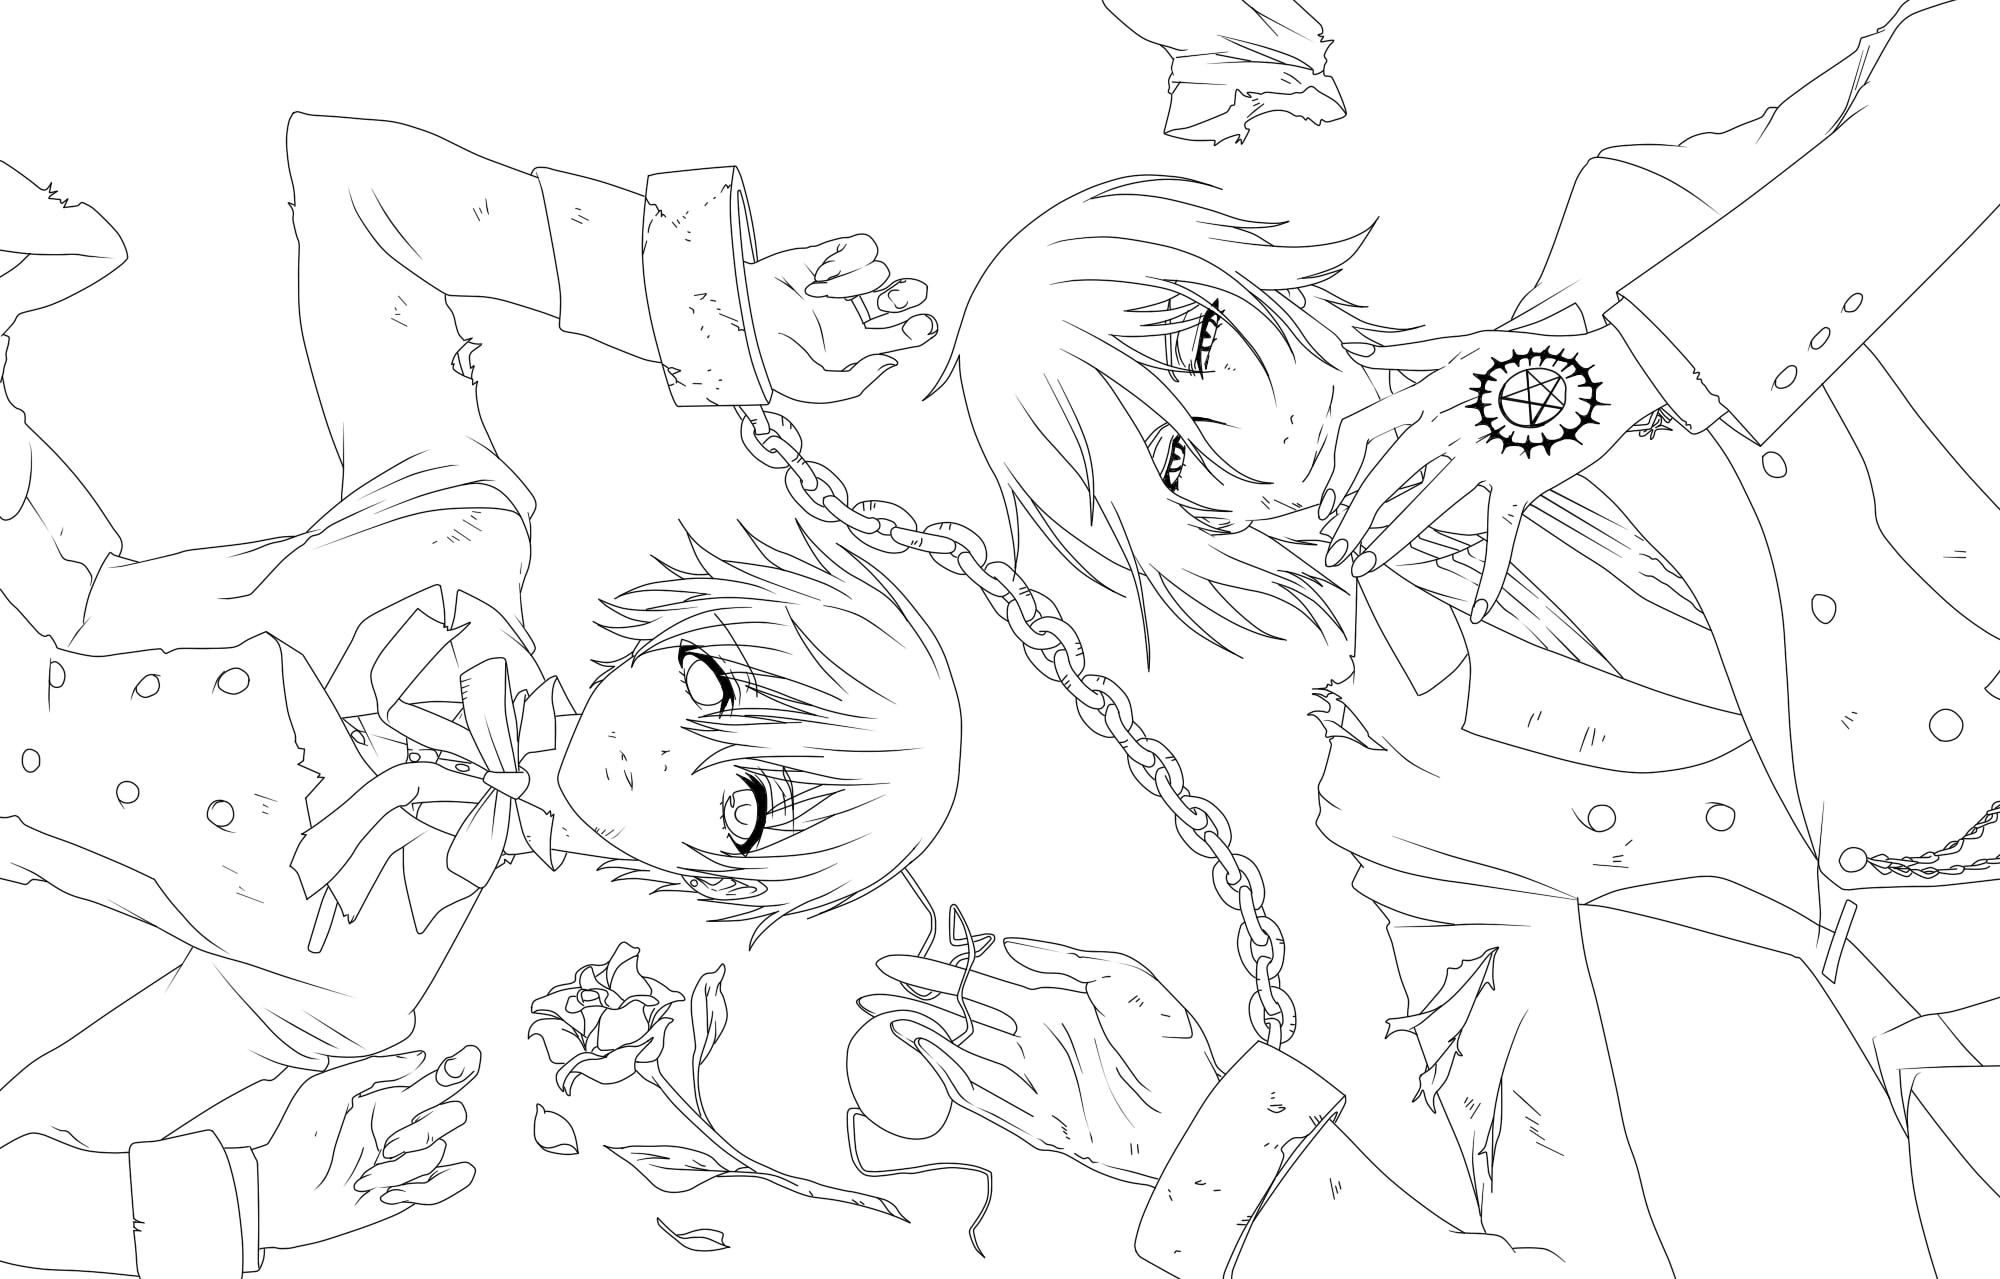 Lineart Kuroshitsuji By Piko Chan4ever On Deviantart In 2020 Coloring Pages Cool Coloring Pages Cute Coloring Pages